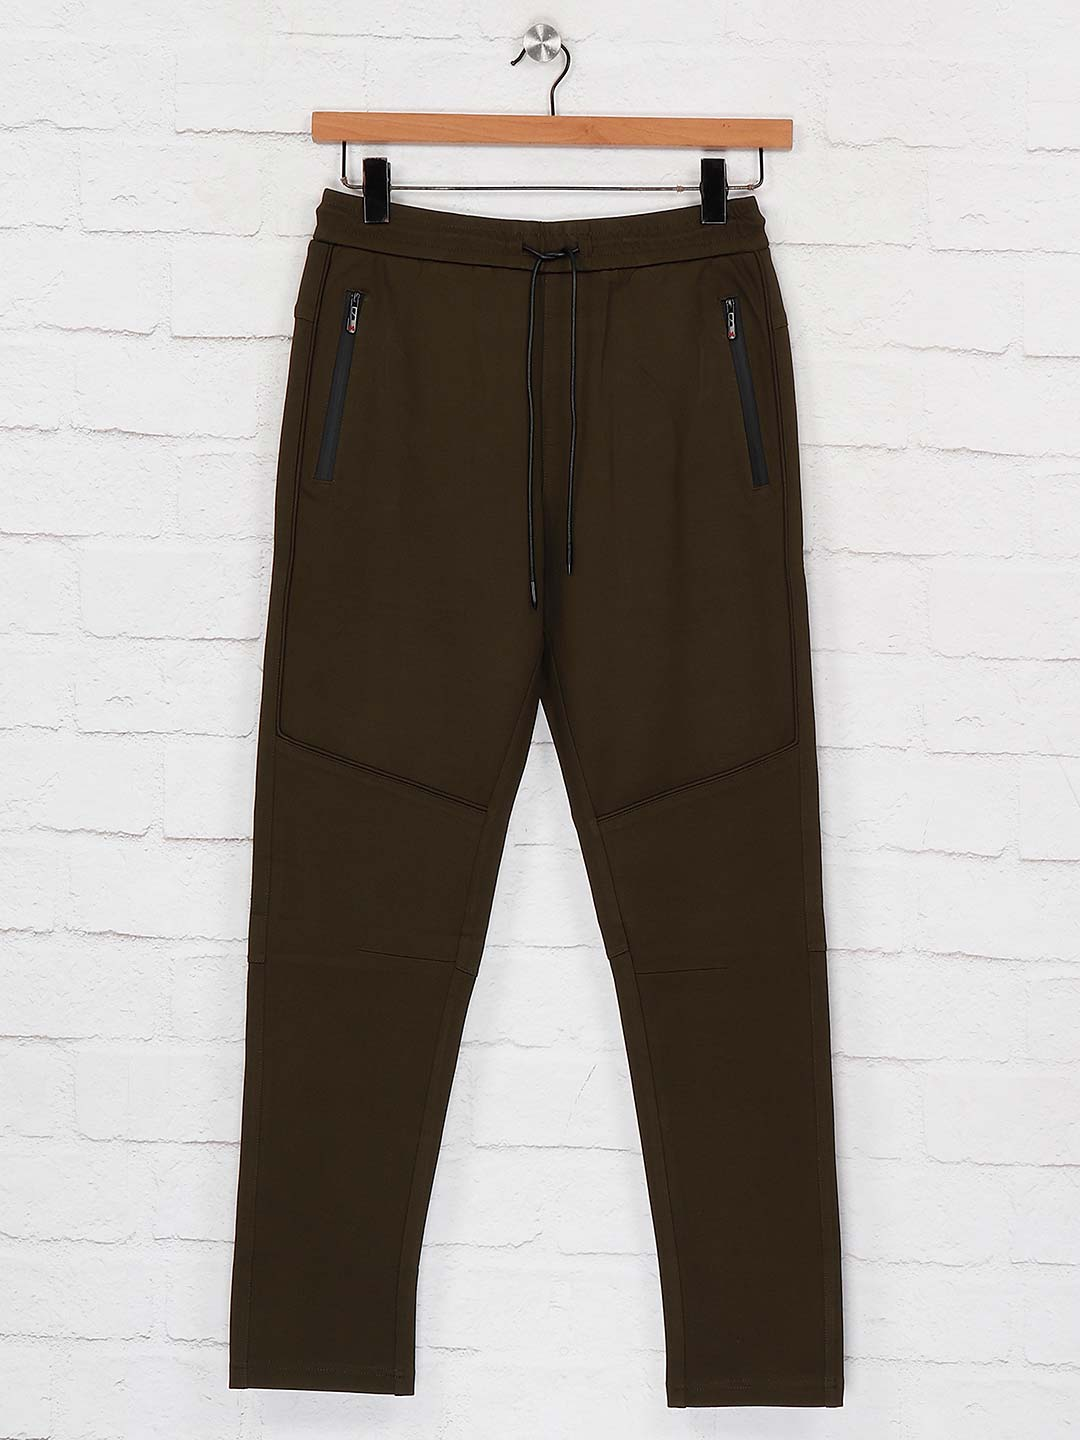 Maml night wear olive hue solid pant?imgeng=w_400